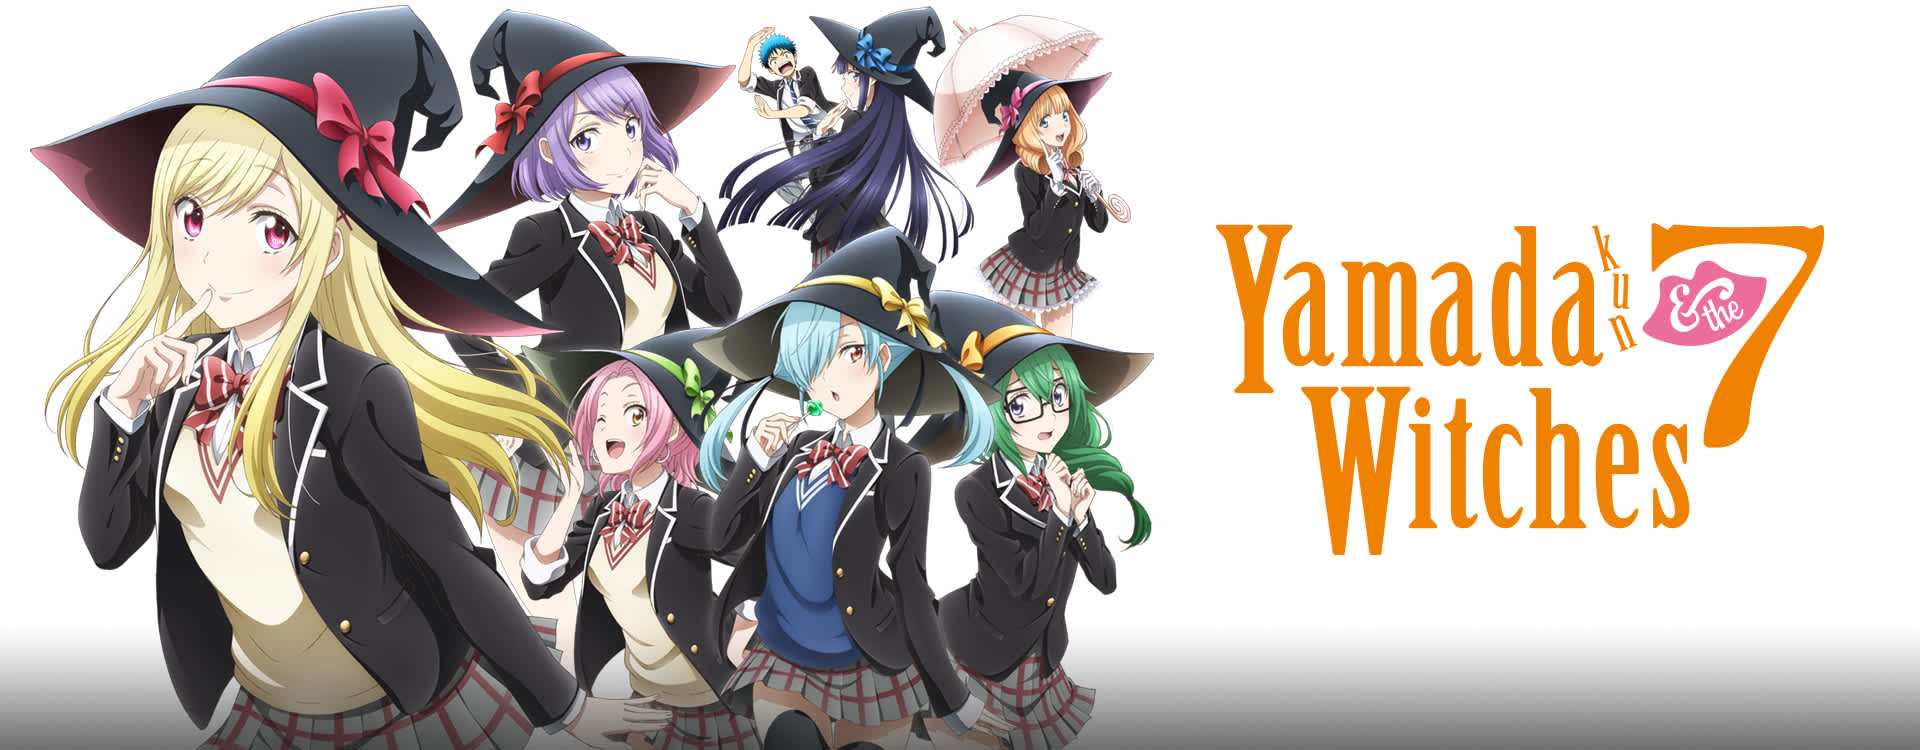 Ani-One Streams Yamada-kun and the Seven Witches Anime on YouTube